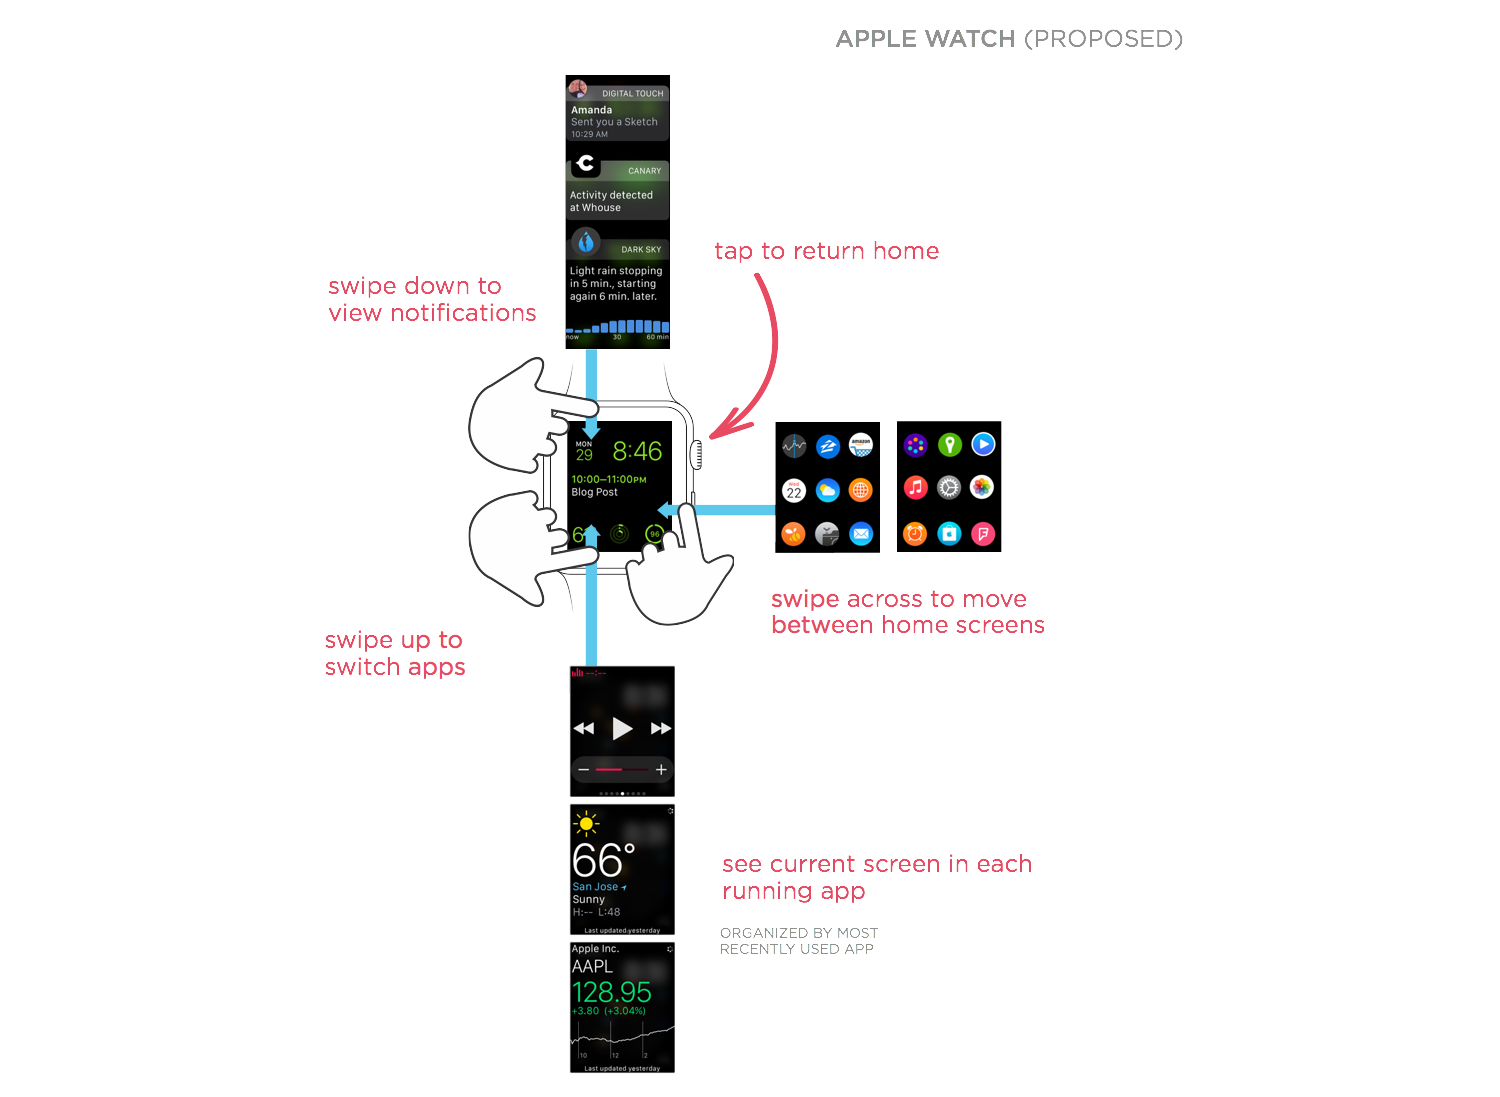 comparing apple watch  interaction model